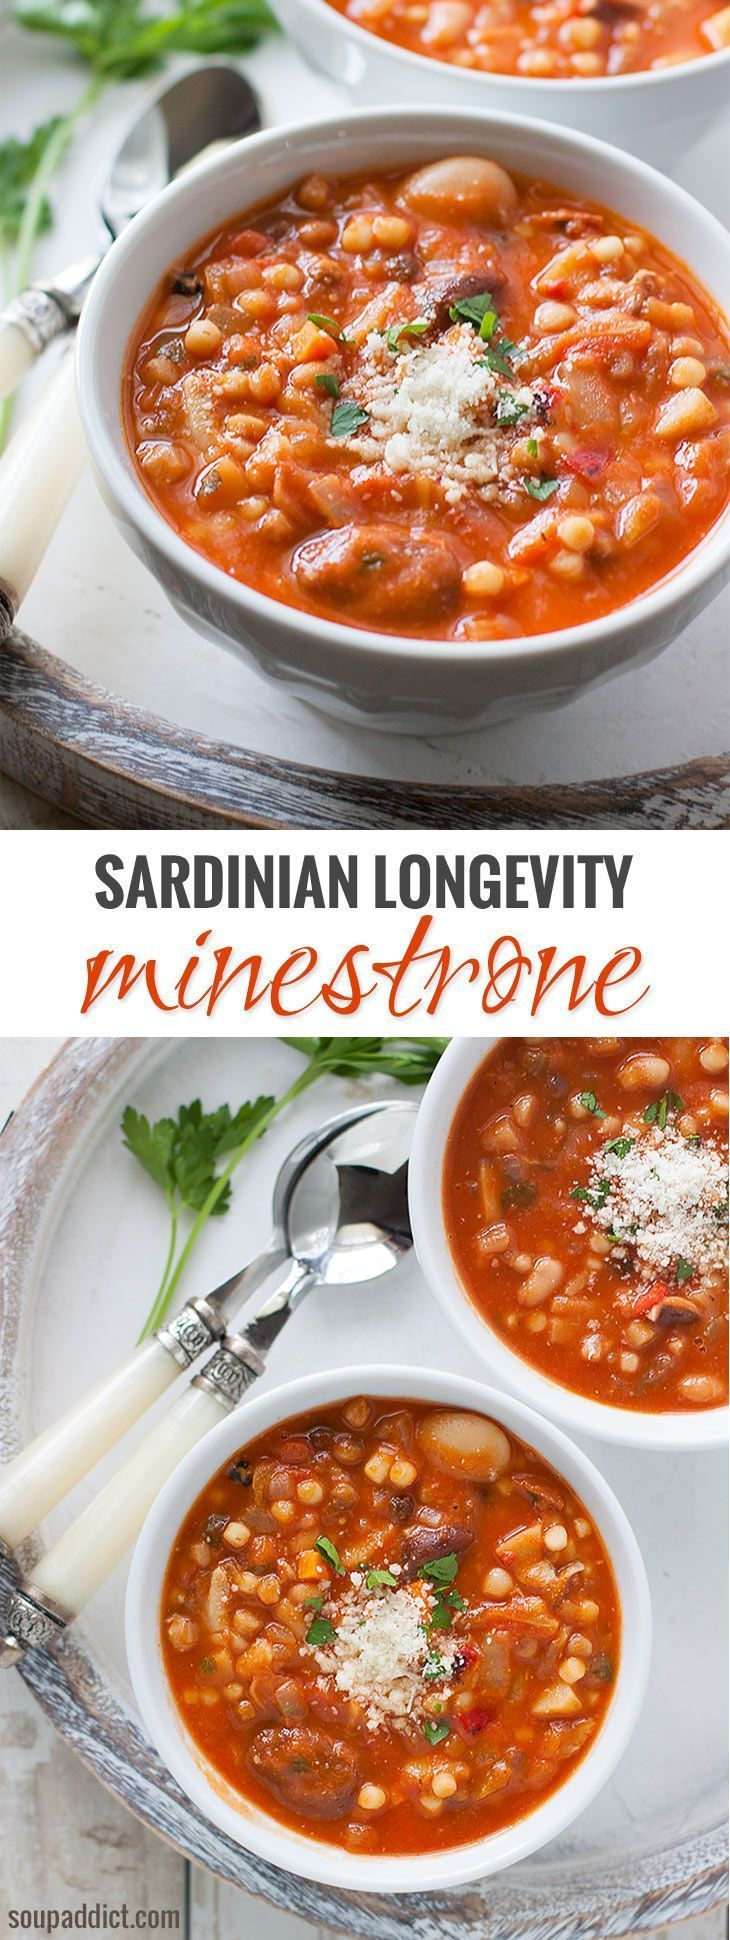 "A healthy soup that tastes fantastic, too. With lots of beans and vegetables, this recipe is based on the soup enjoyed daily by the long-living Sardinians profiled in ""The Blue Zones."" Get the recipe at SoupAddict.com"